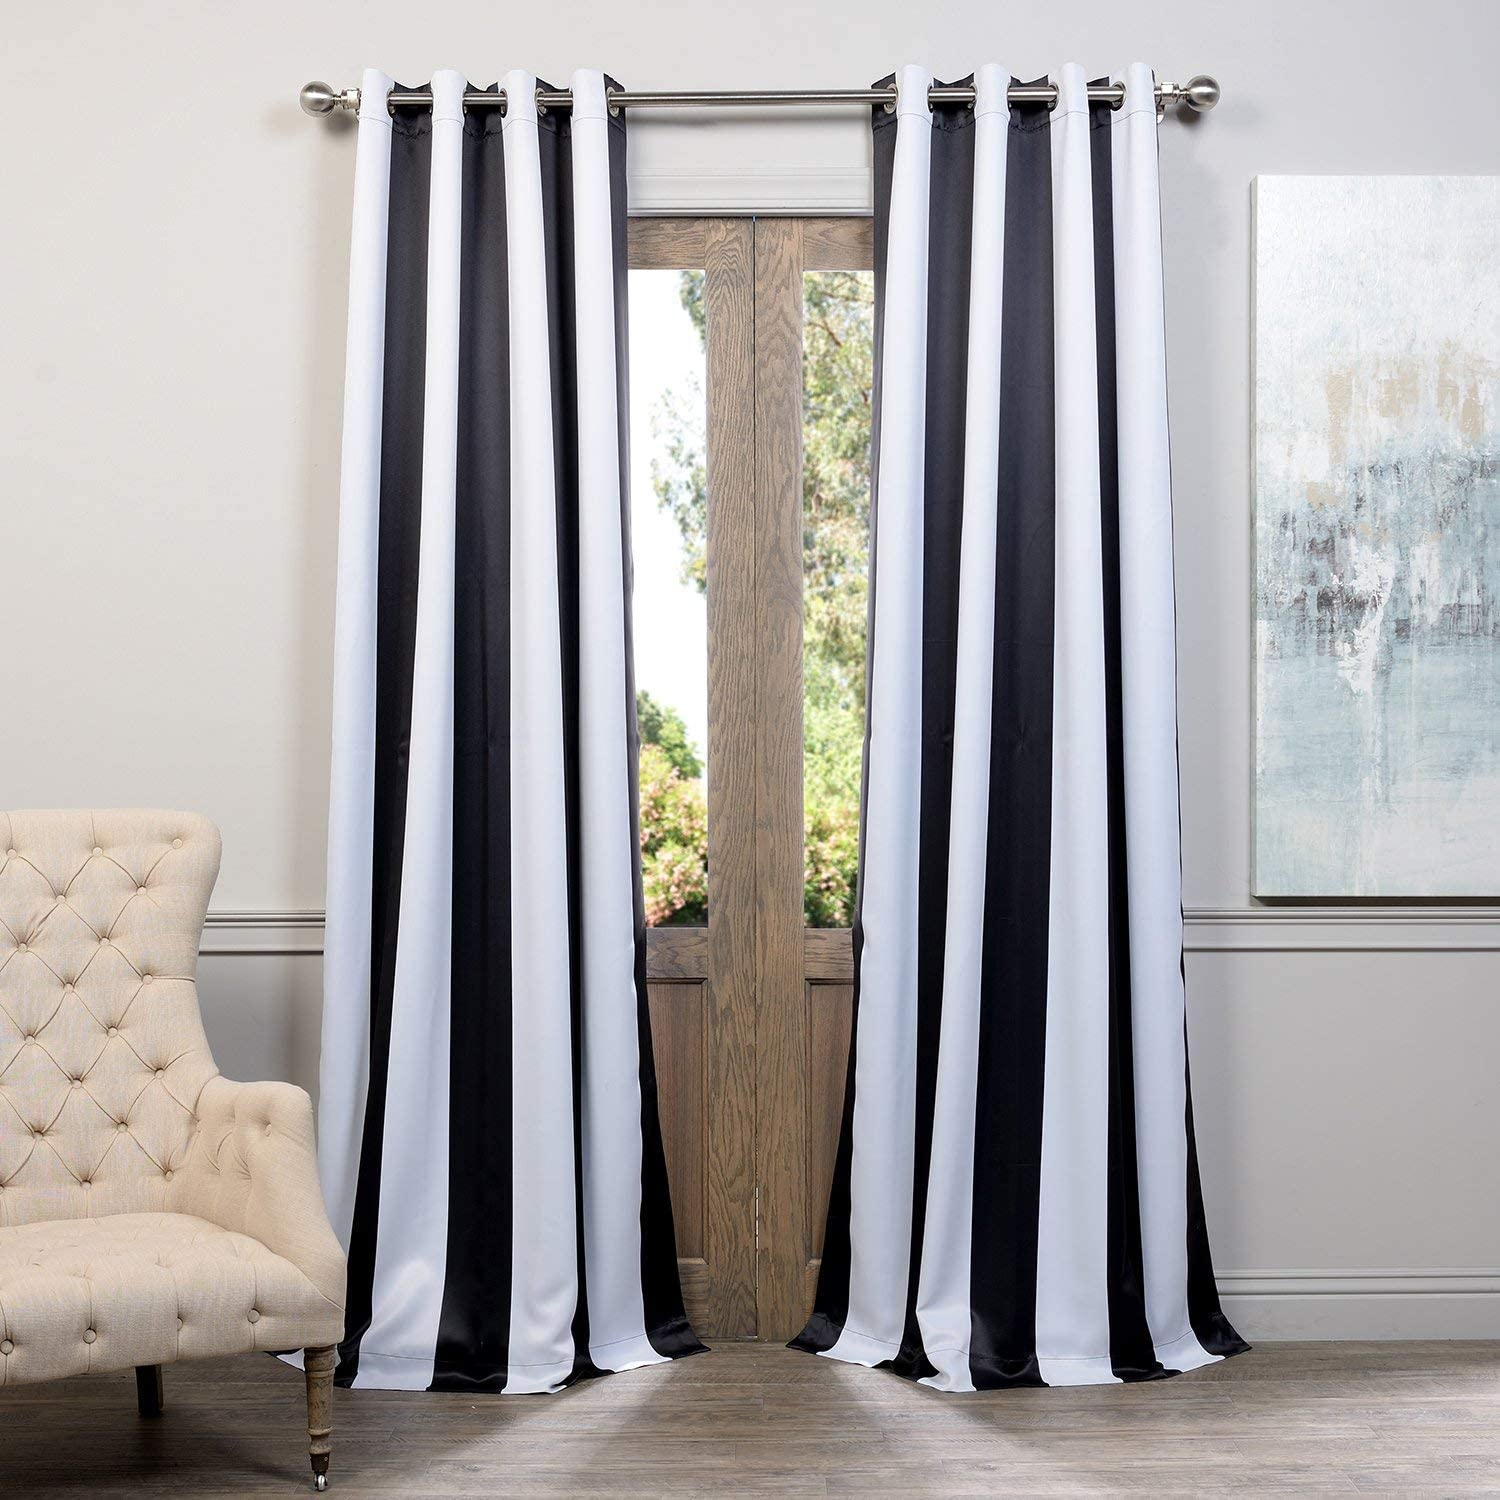 HPD HALF PRICE DRAPES BOCH-KC43-108-GR Awning Stripe Grommet Room Darkening Curtain 50 x 108 Awning Black & White 1 Panel